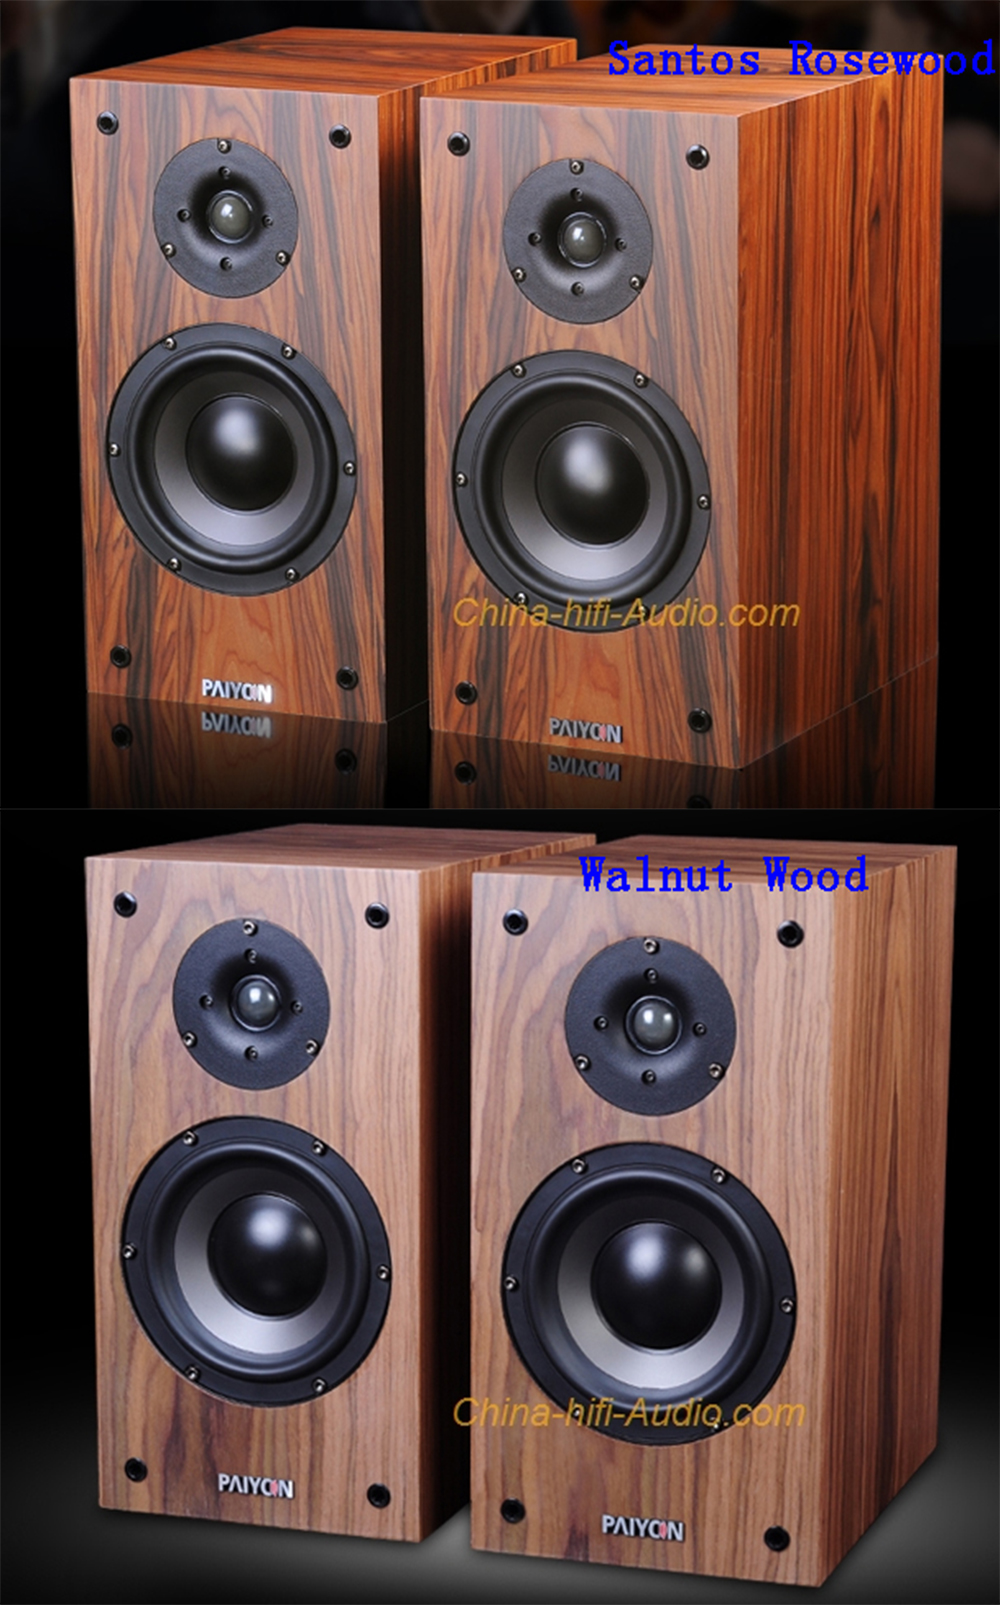 PAIYON P4-2.0 Bookshelf Loudspeaker Audiophile Passive Hi-Fi Audio Speakers Pair - Click Image to Close